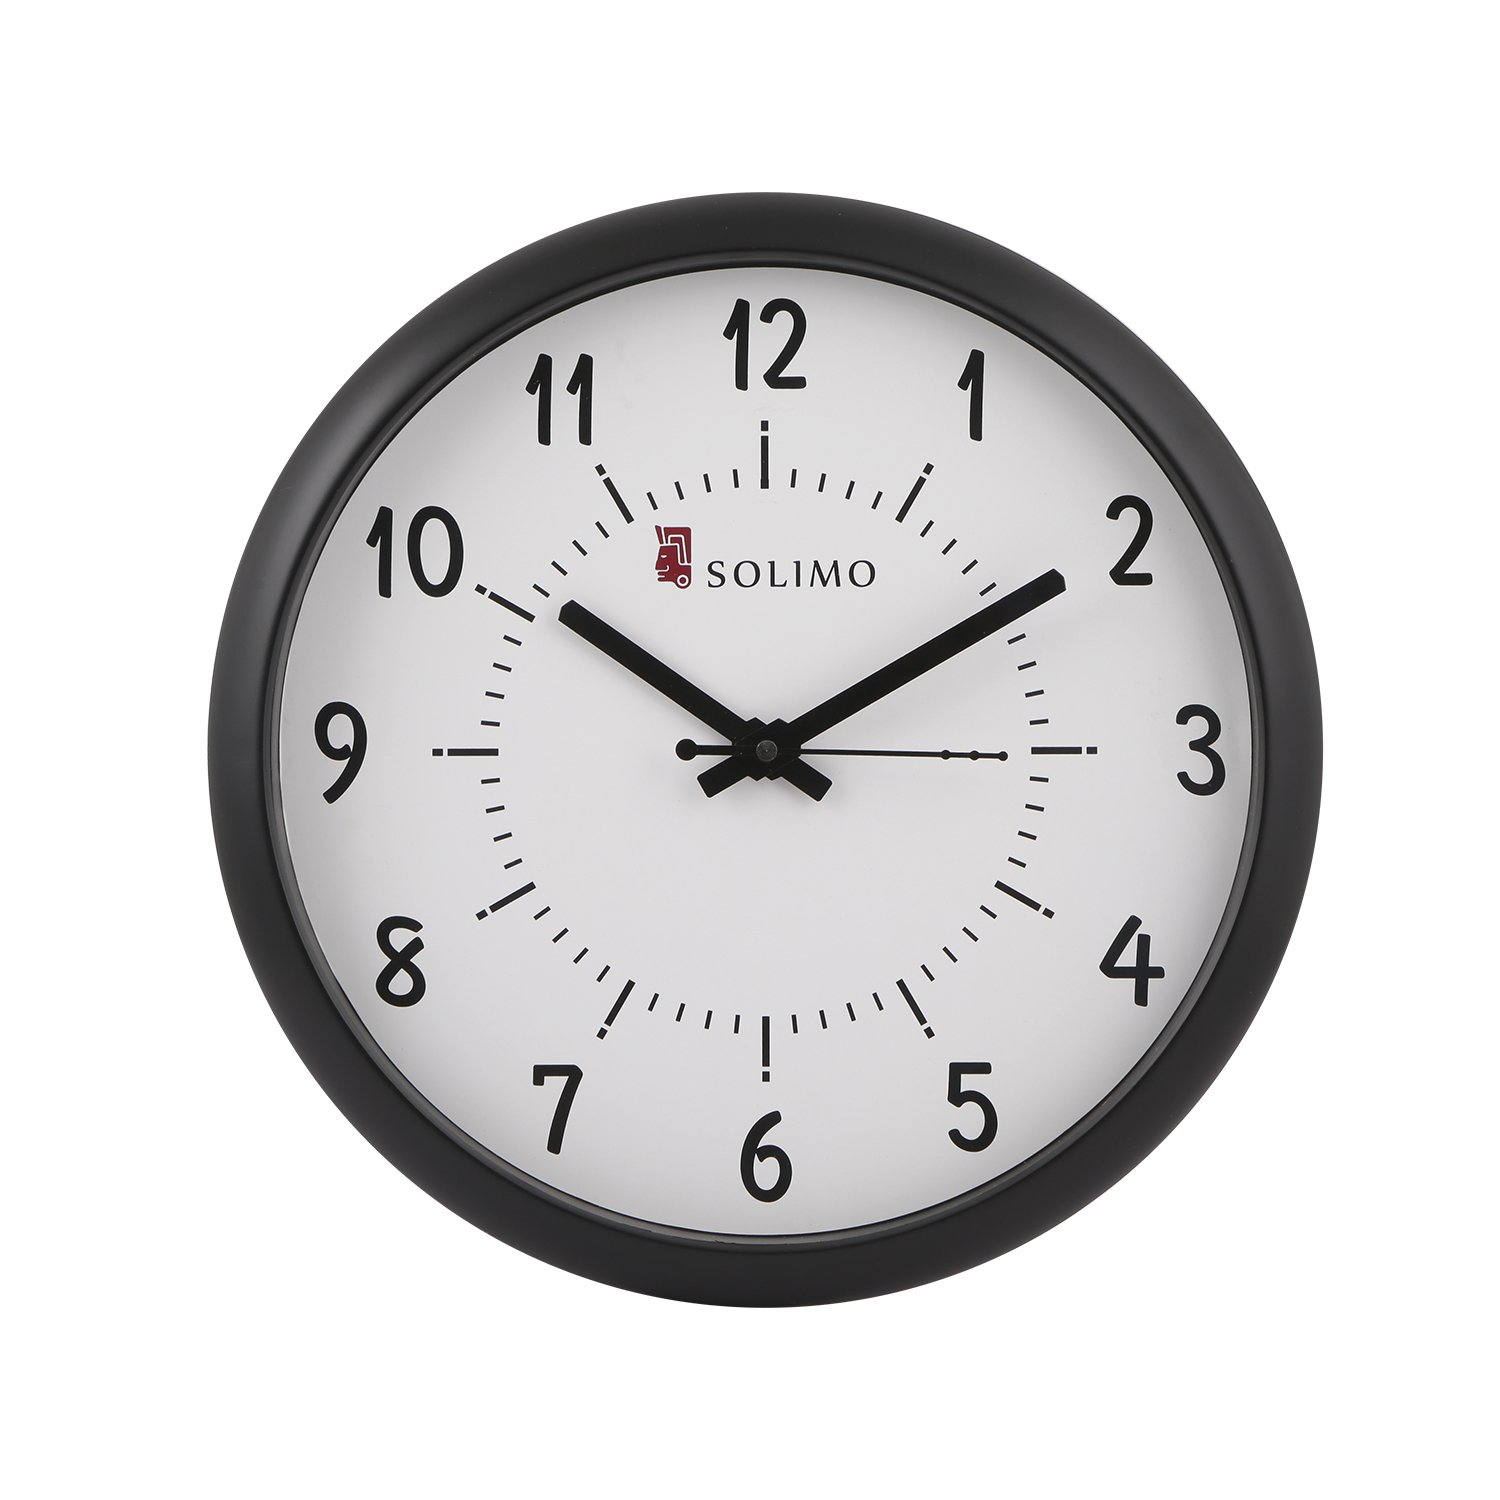 Buy solimo 11 inch wall clock step movement black frame online buy solimo 11 inch wall clock step movement black frame online at low prices in india amazon amipublicfo Image collections